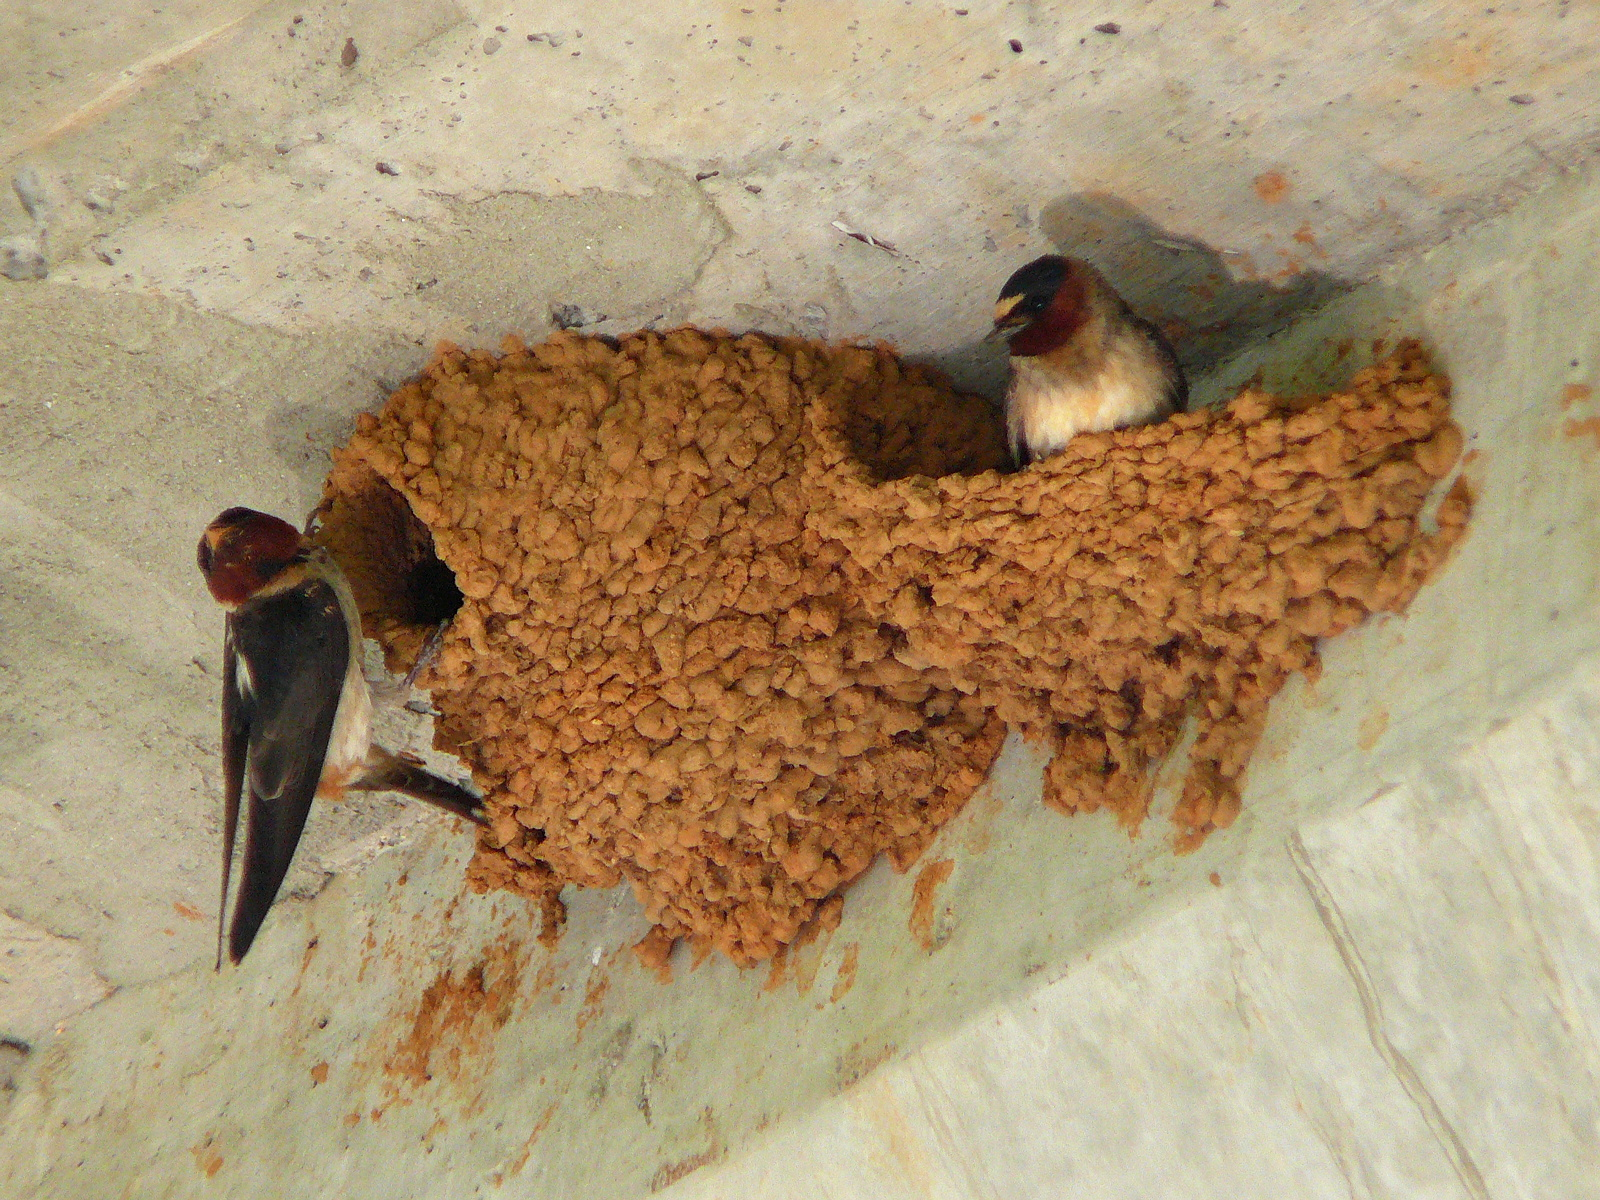 File:Cliff Swallow-27527-2.jpg - Wikimedia Commons